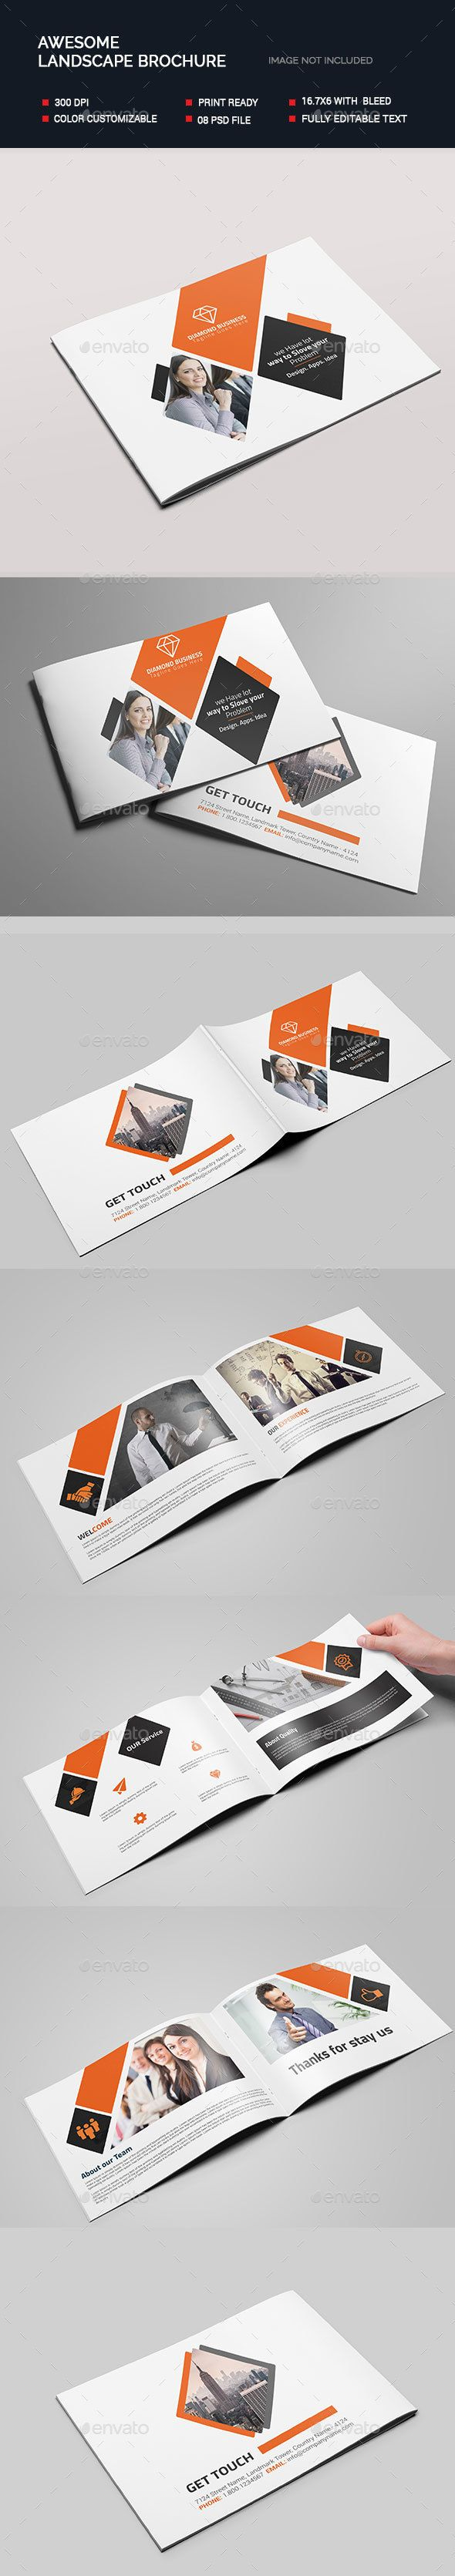 awesome landscape brochure template psd download here http